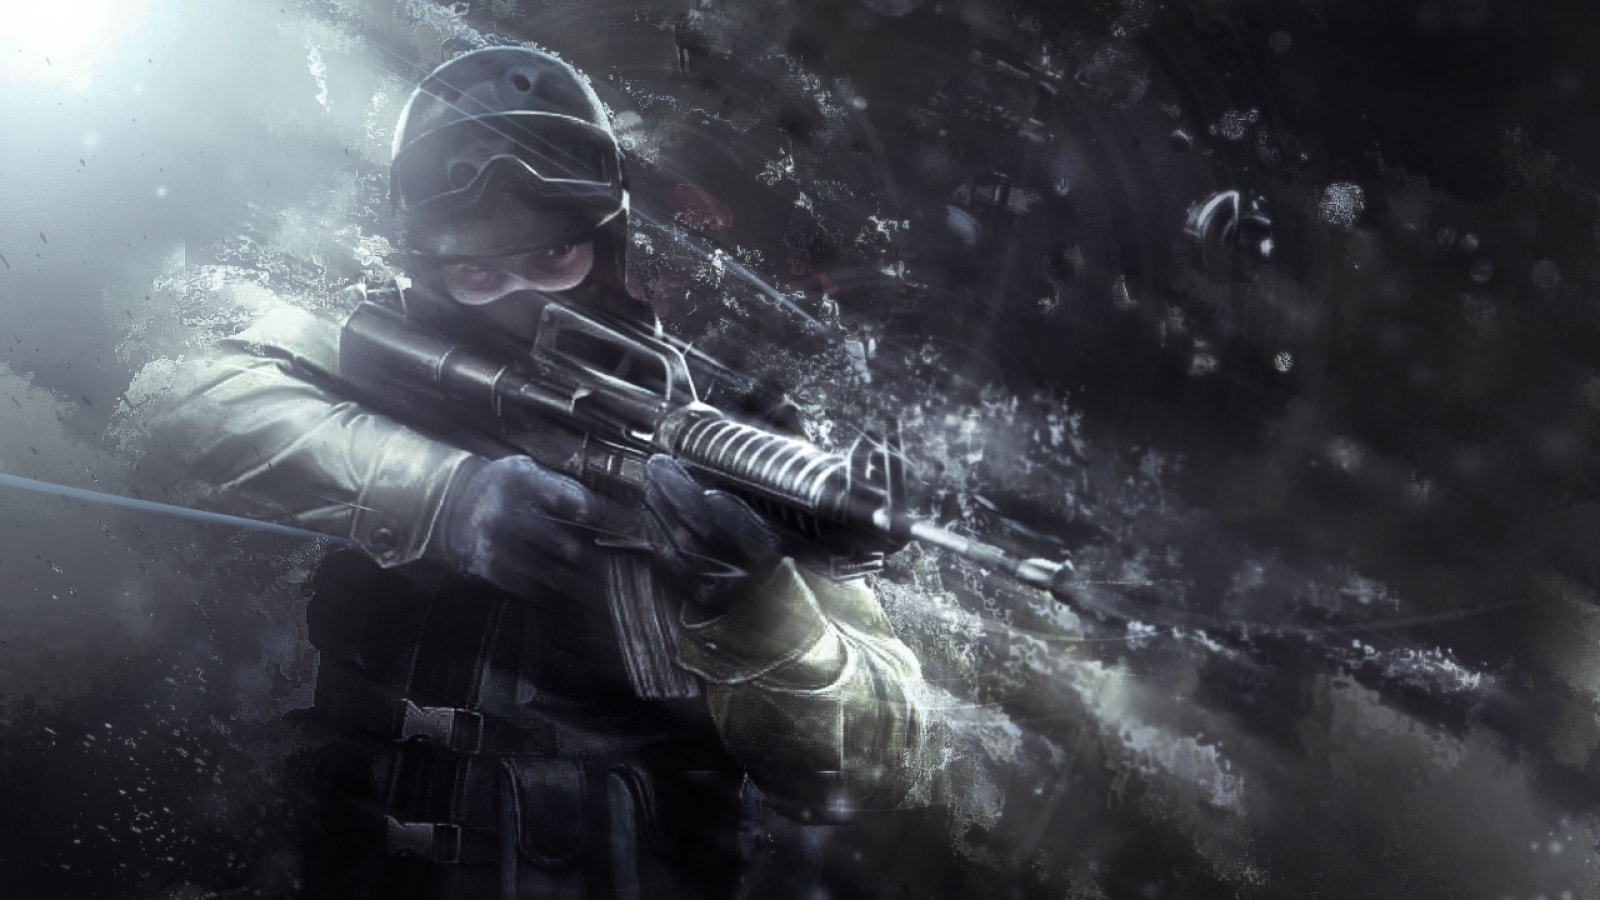 Counter-Strike 1.6 full hd wallpapers